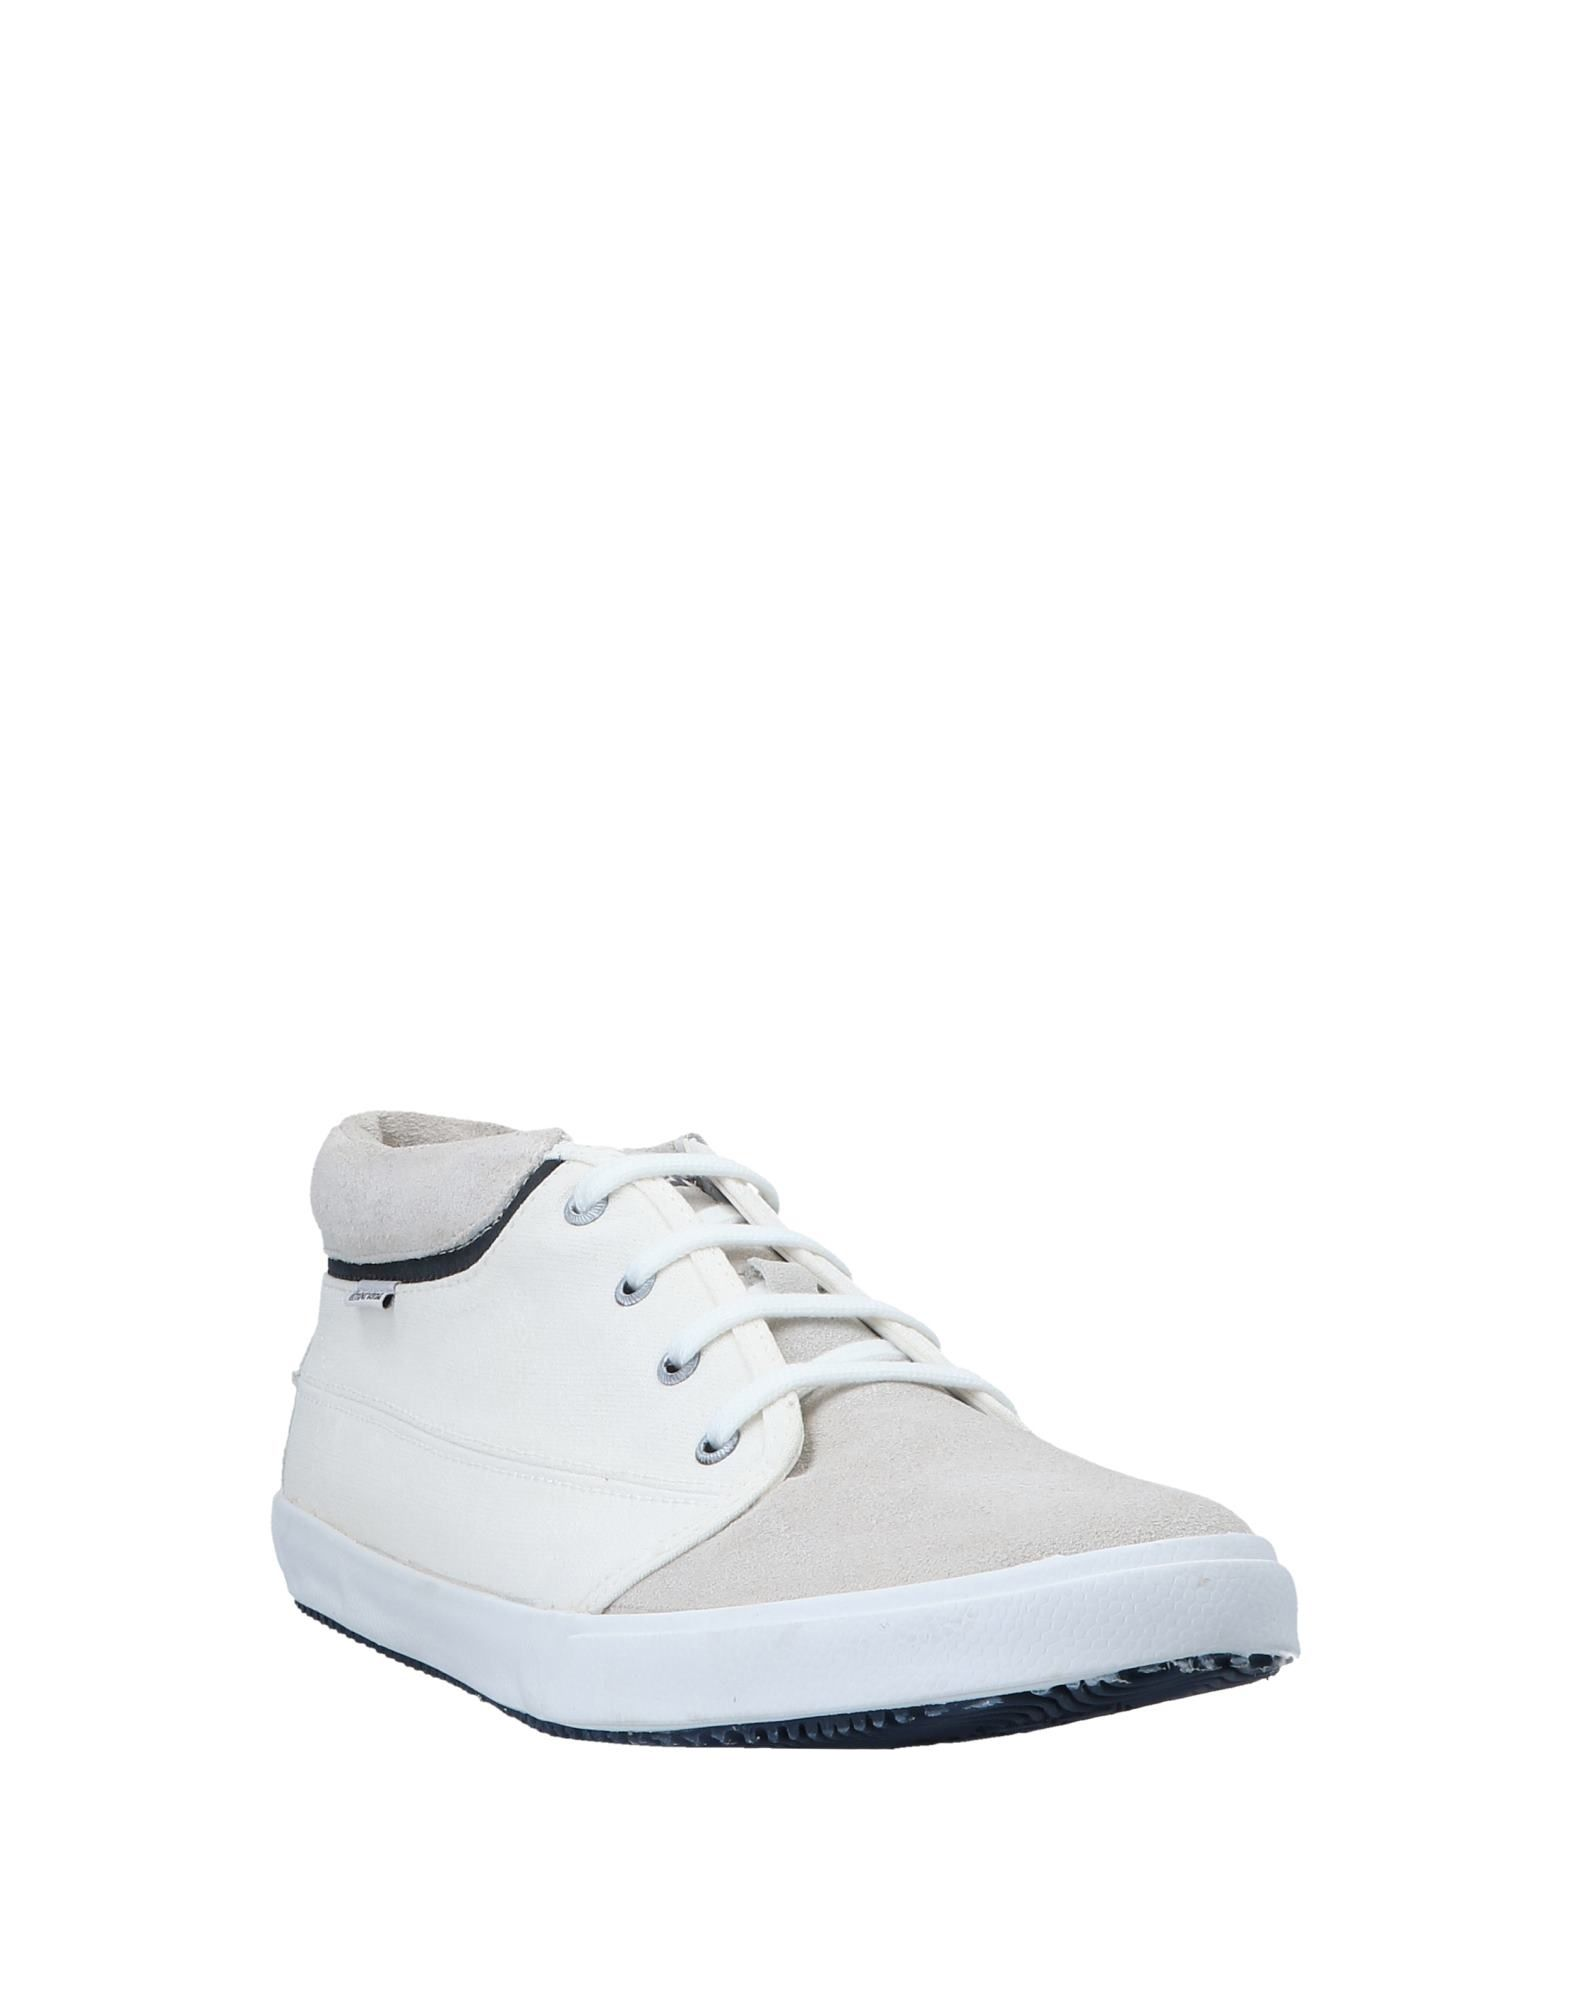 3e0af27bb70 TIMBERLAND ΠΑΠΟΥΤΣΙΑ Χαμηλά sneakers, Ανδρικά sneakers, ΑΝΔΡΑΣ | ΠΑΠΟΥΤΣΙΑ  | SNEAKERS